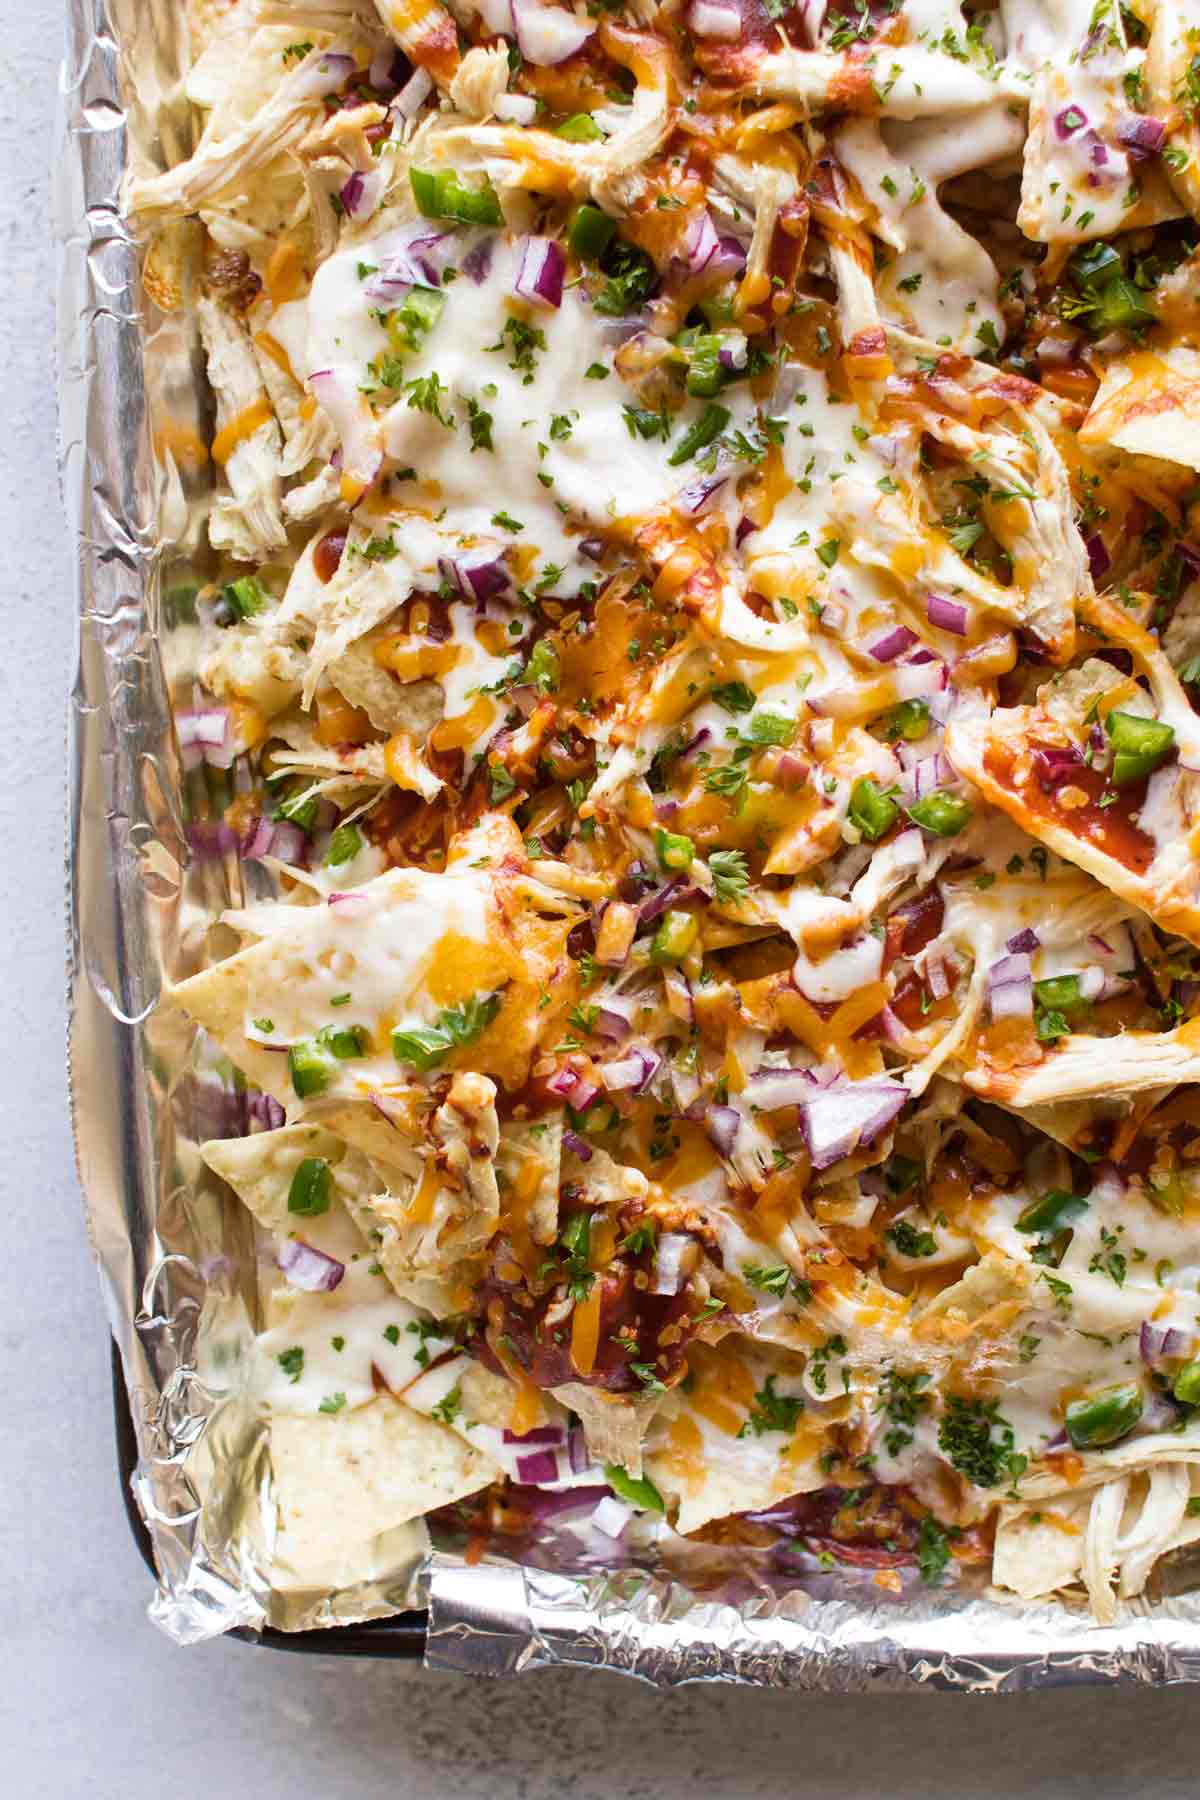 close-up photo of nachos